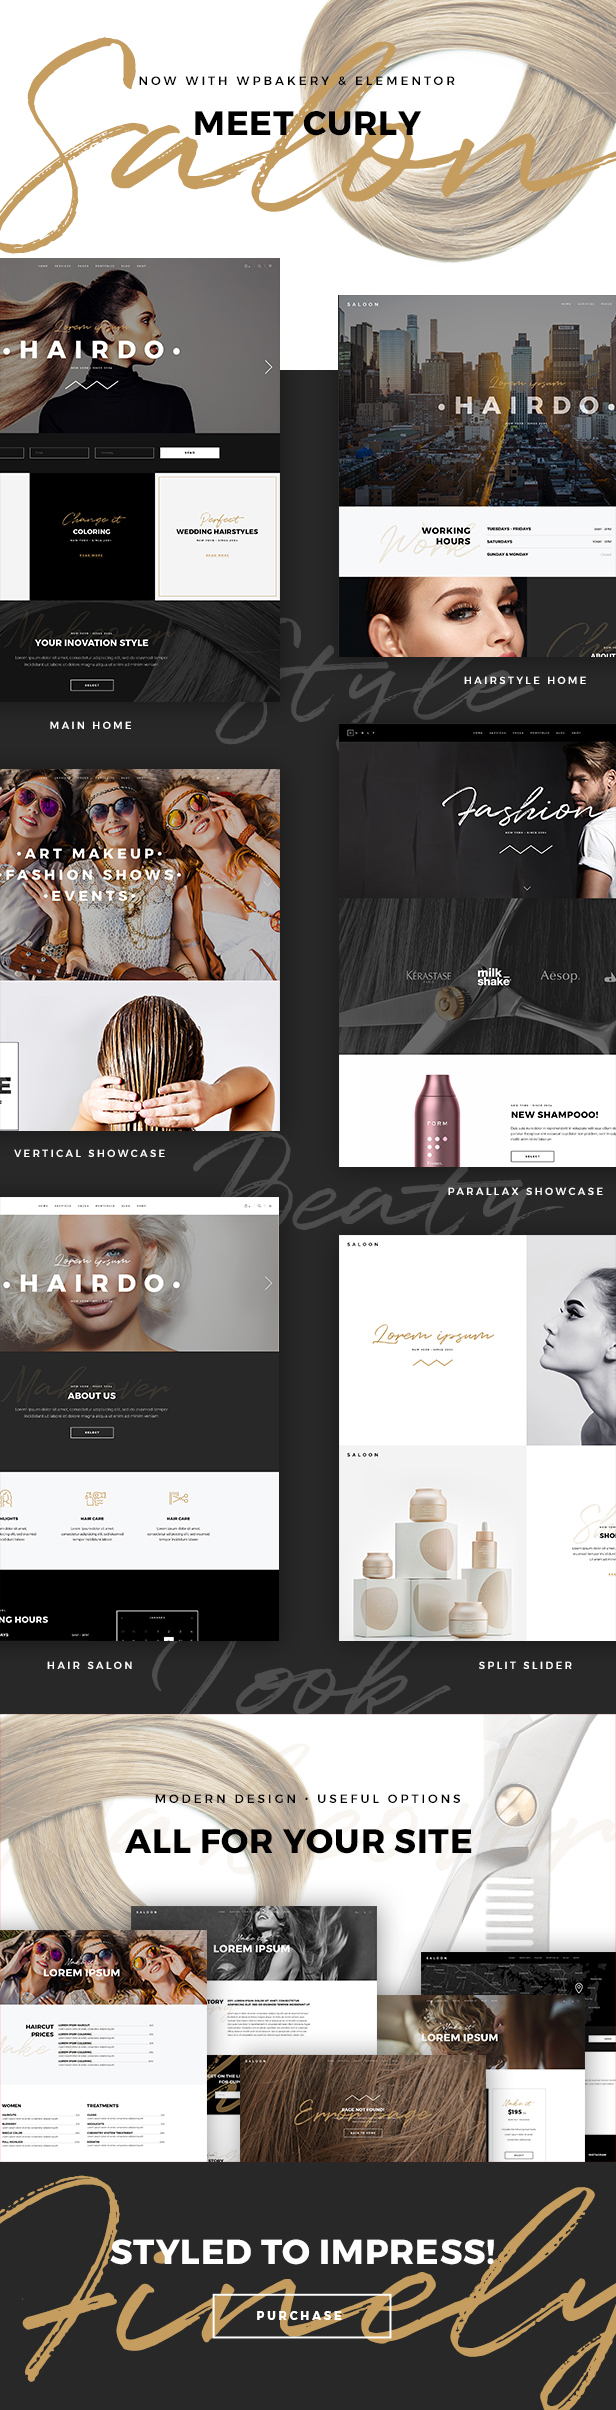 01a - Curly - A Stylish Theme for Hairdressers and Hair Salons